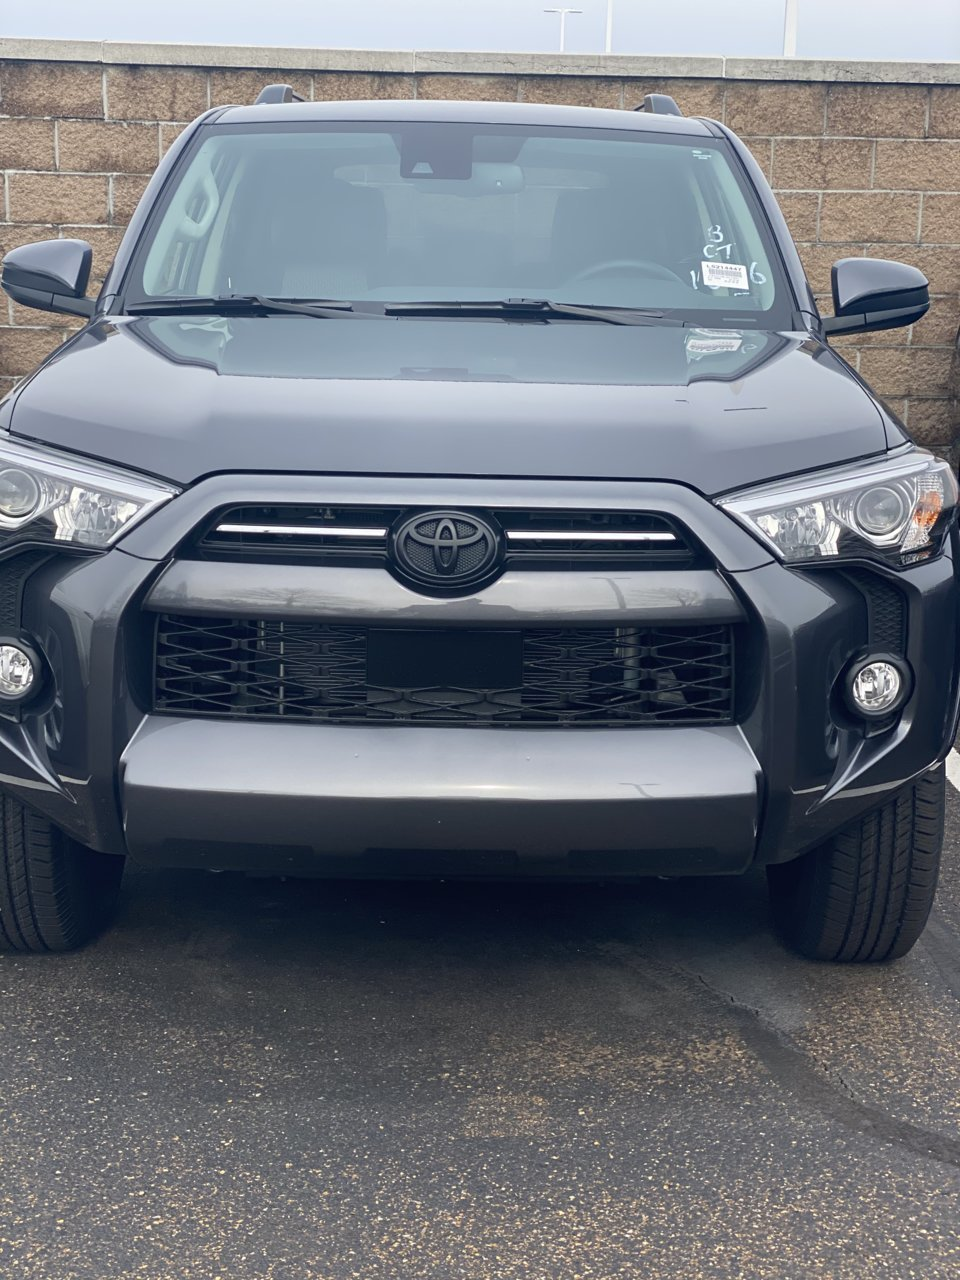 2020 Limited To Sr5 Bumper Swap Toyota 4runner Forum 4runners Com